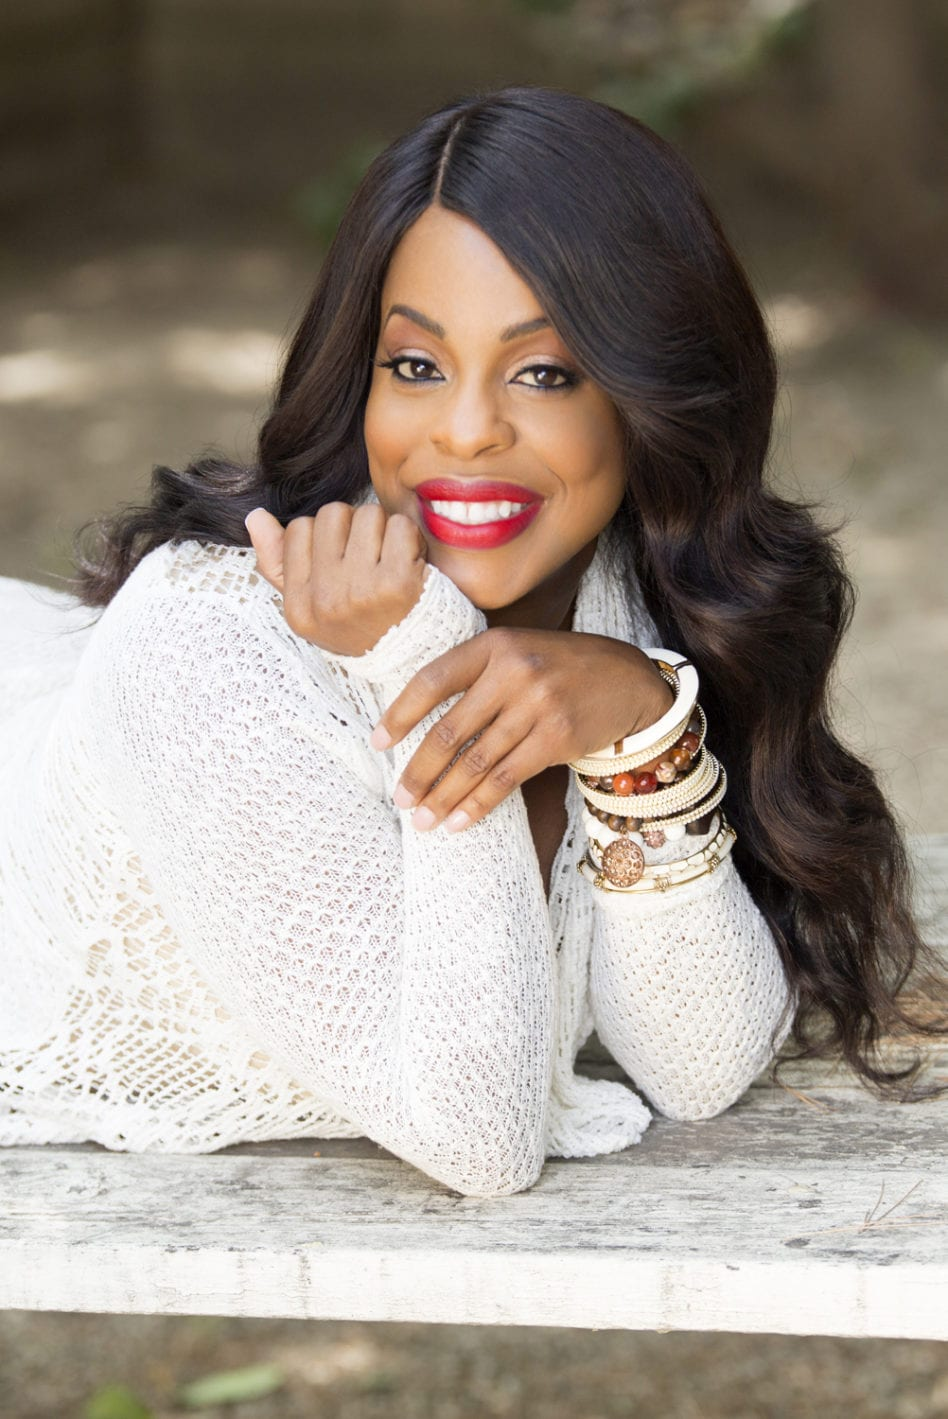 Claws out: Niecy Nash — the gay interview